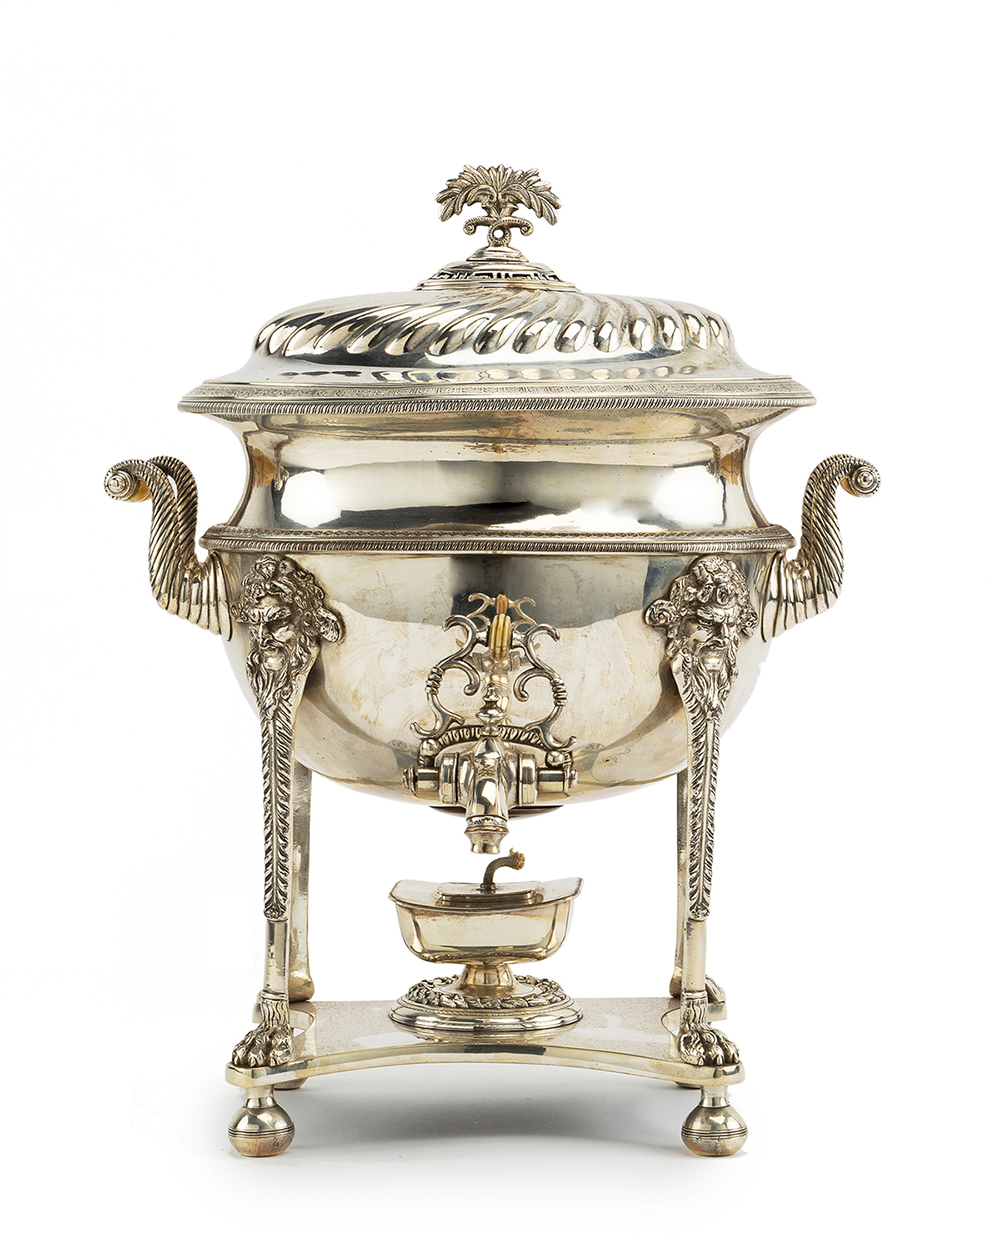 Lot 1406 - An English silver plated hot water urn